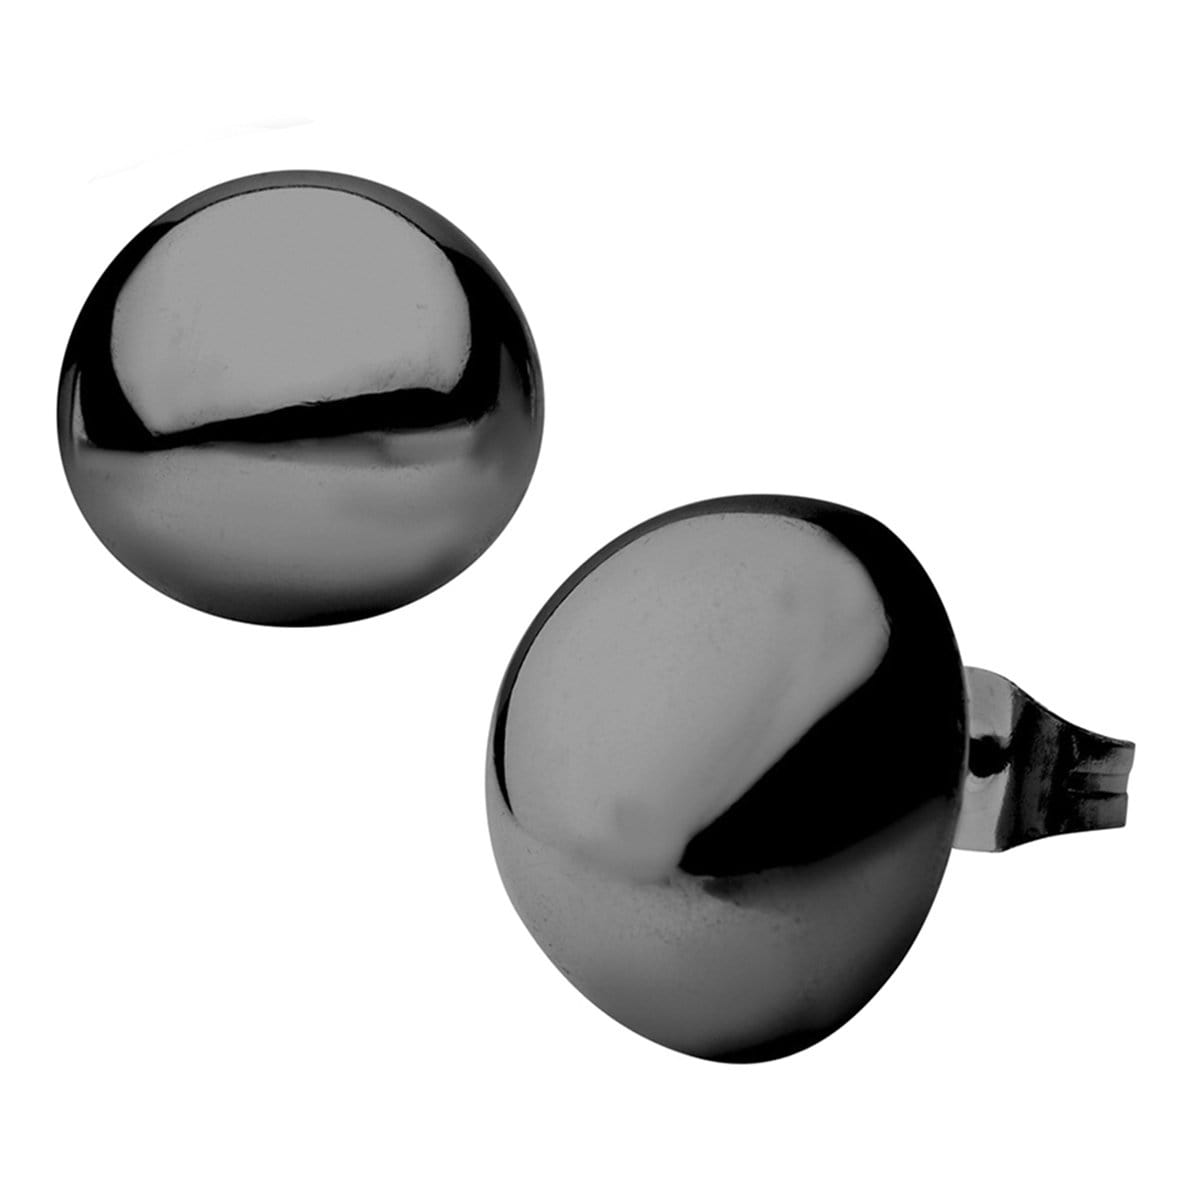 Black Stainless Steel Large Round Dome Studs Earrings